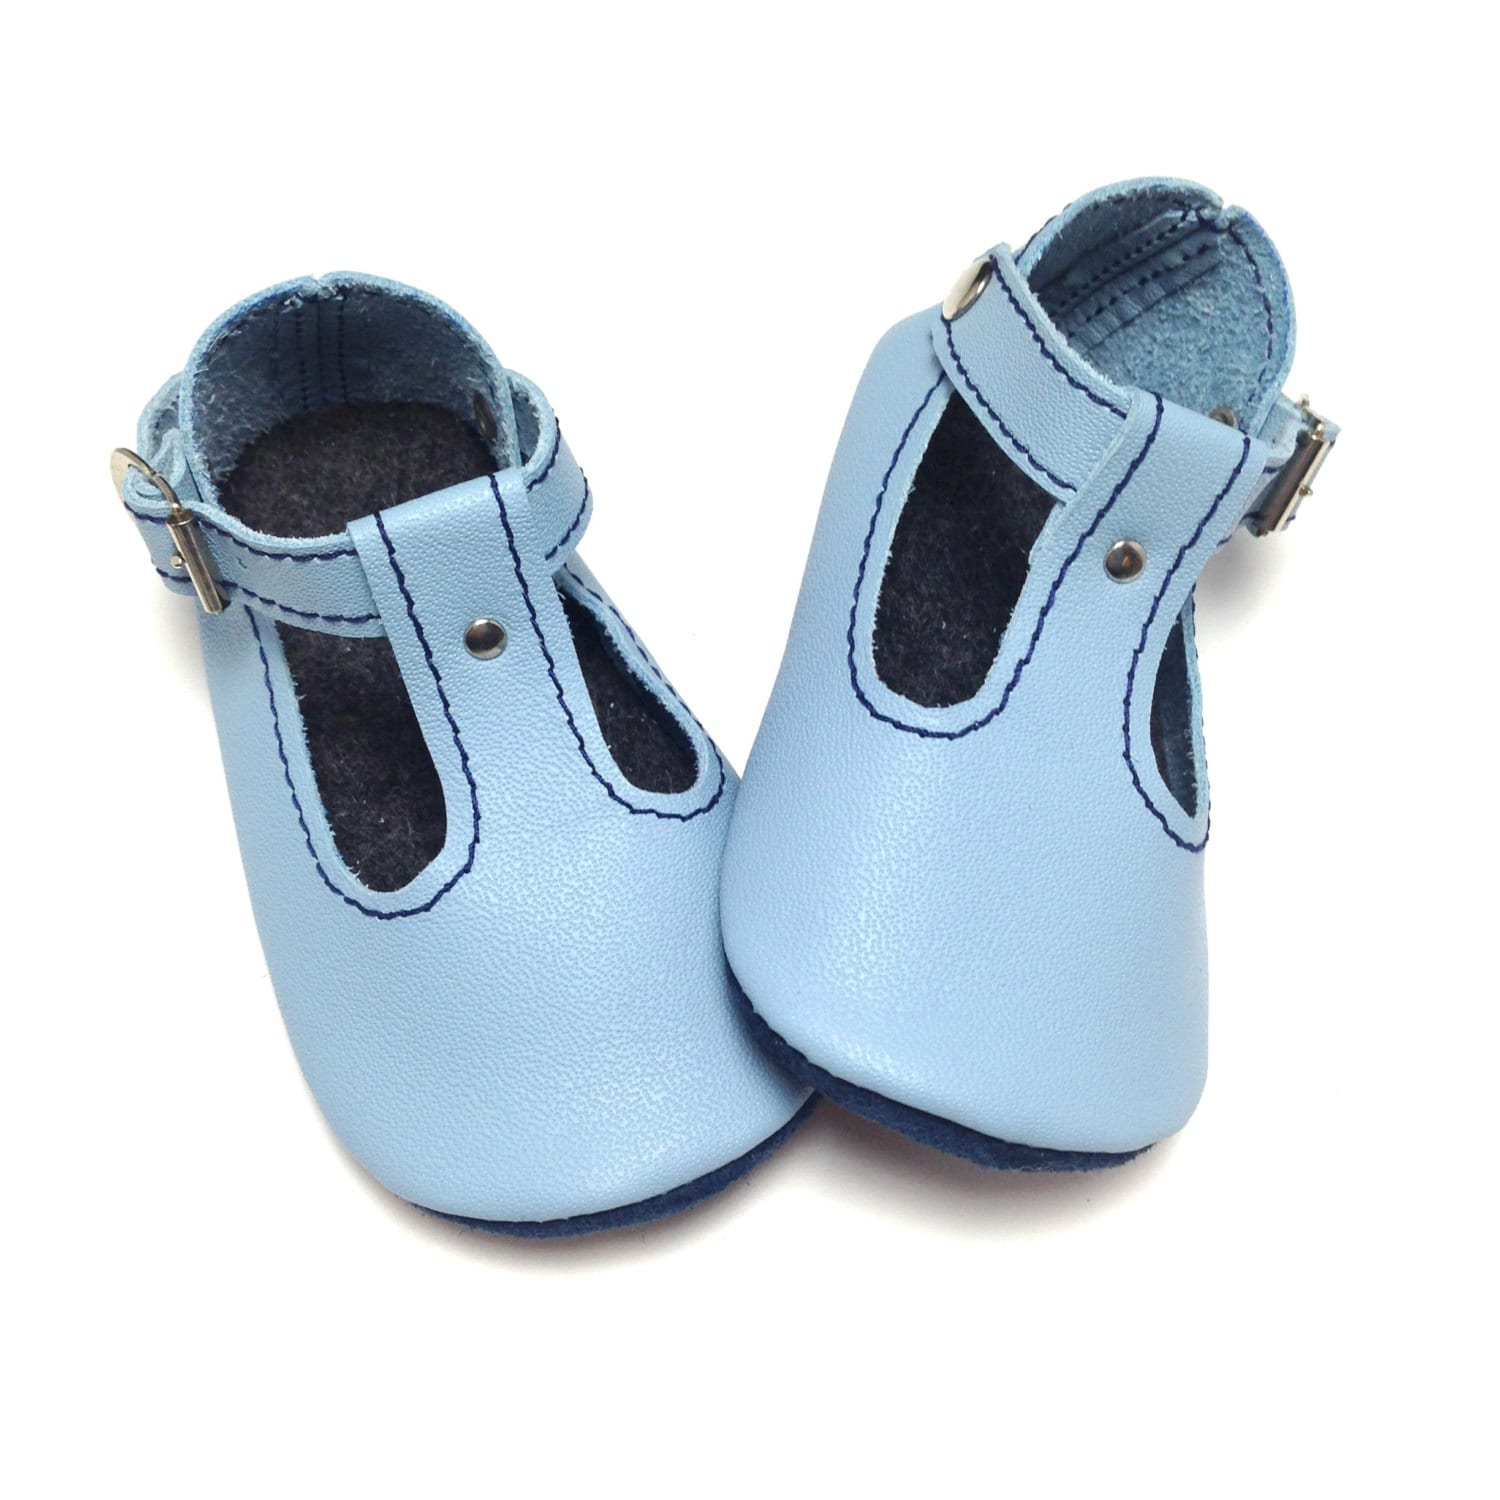 Handmade soft soled leather baby shoes T bar sandals Baby